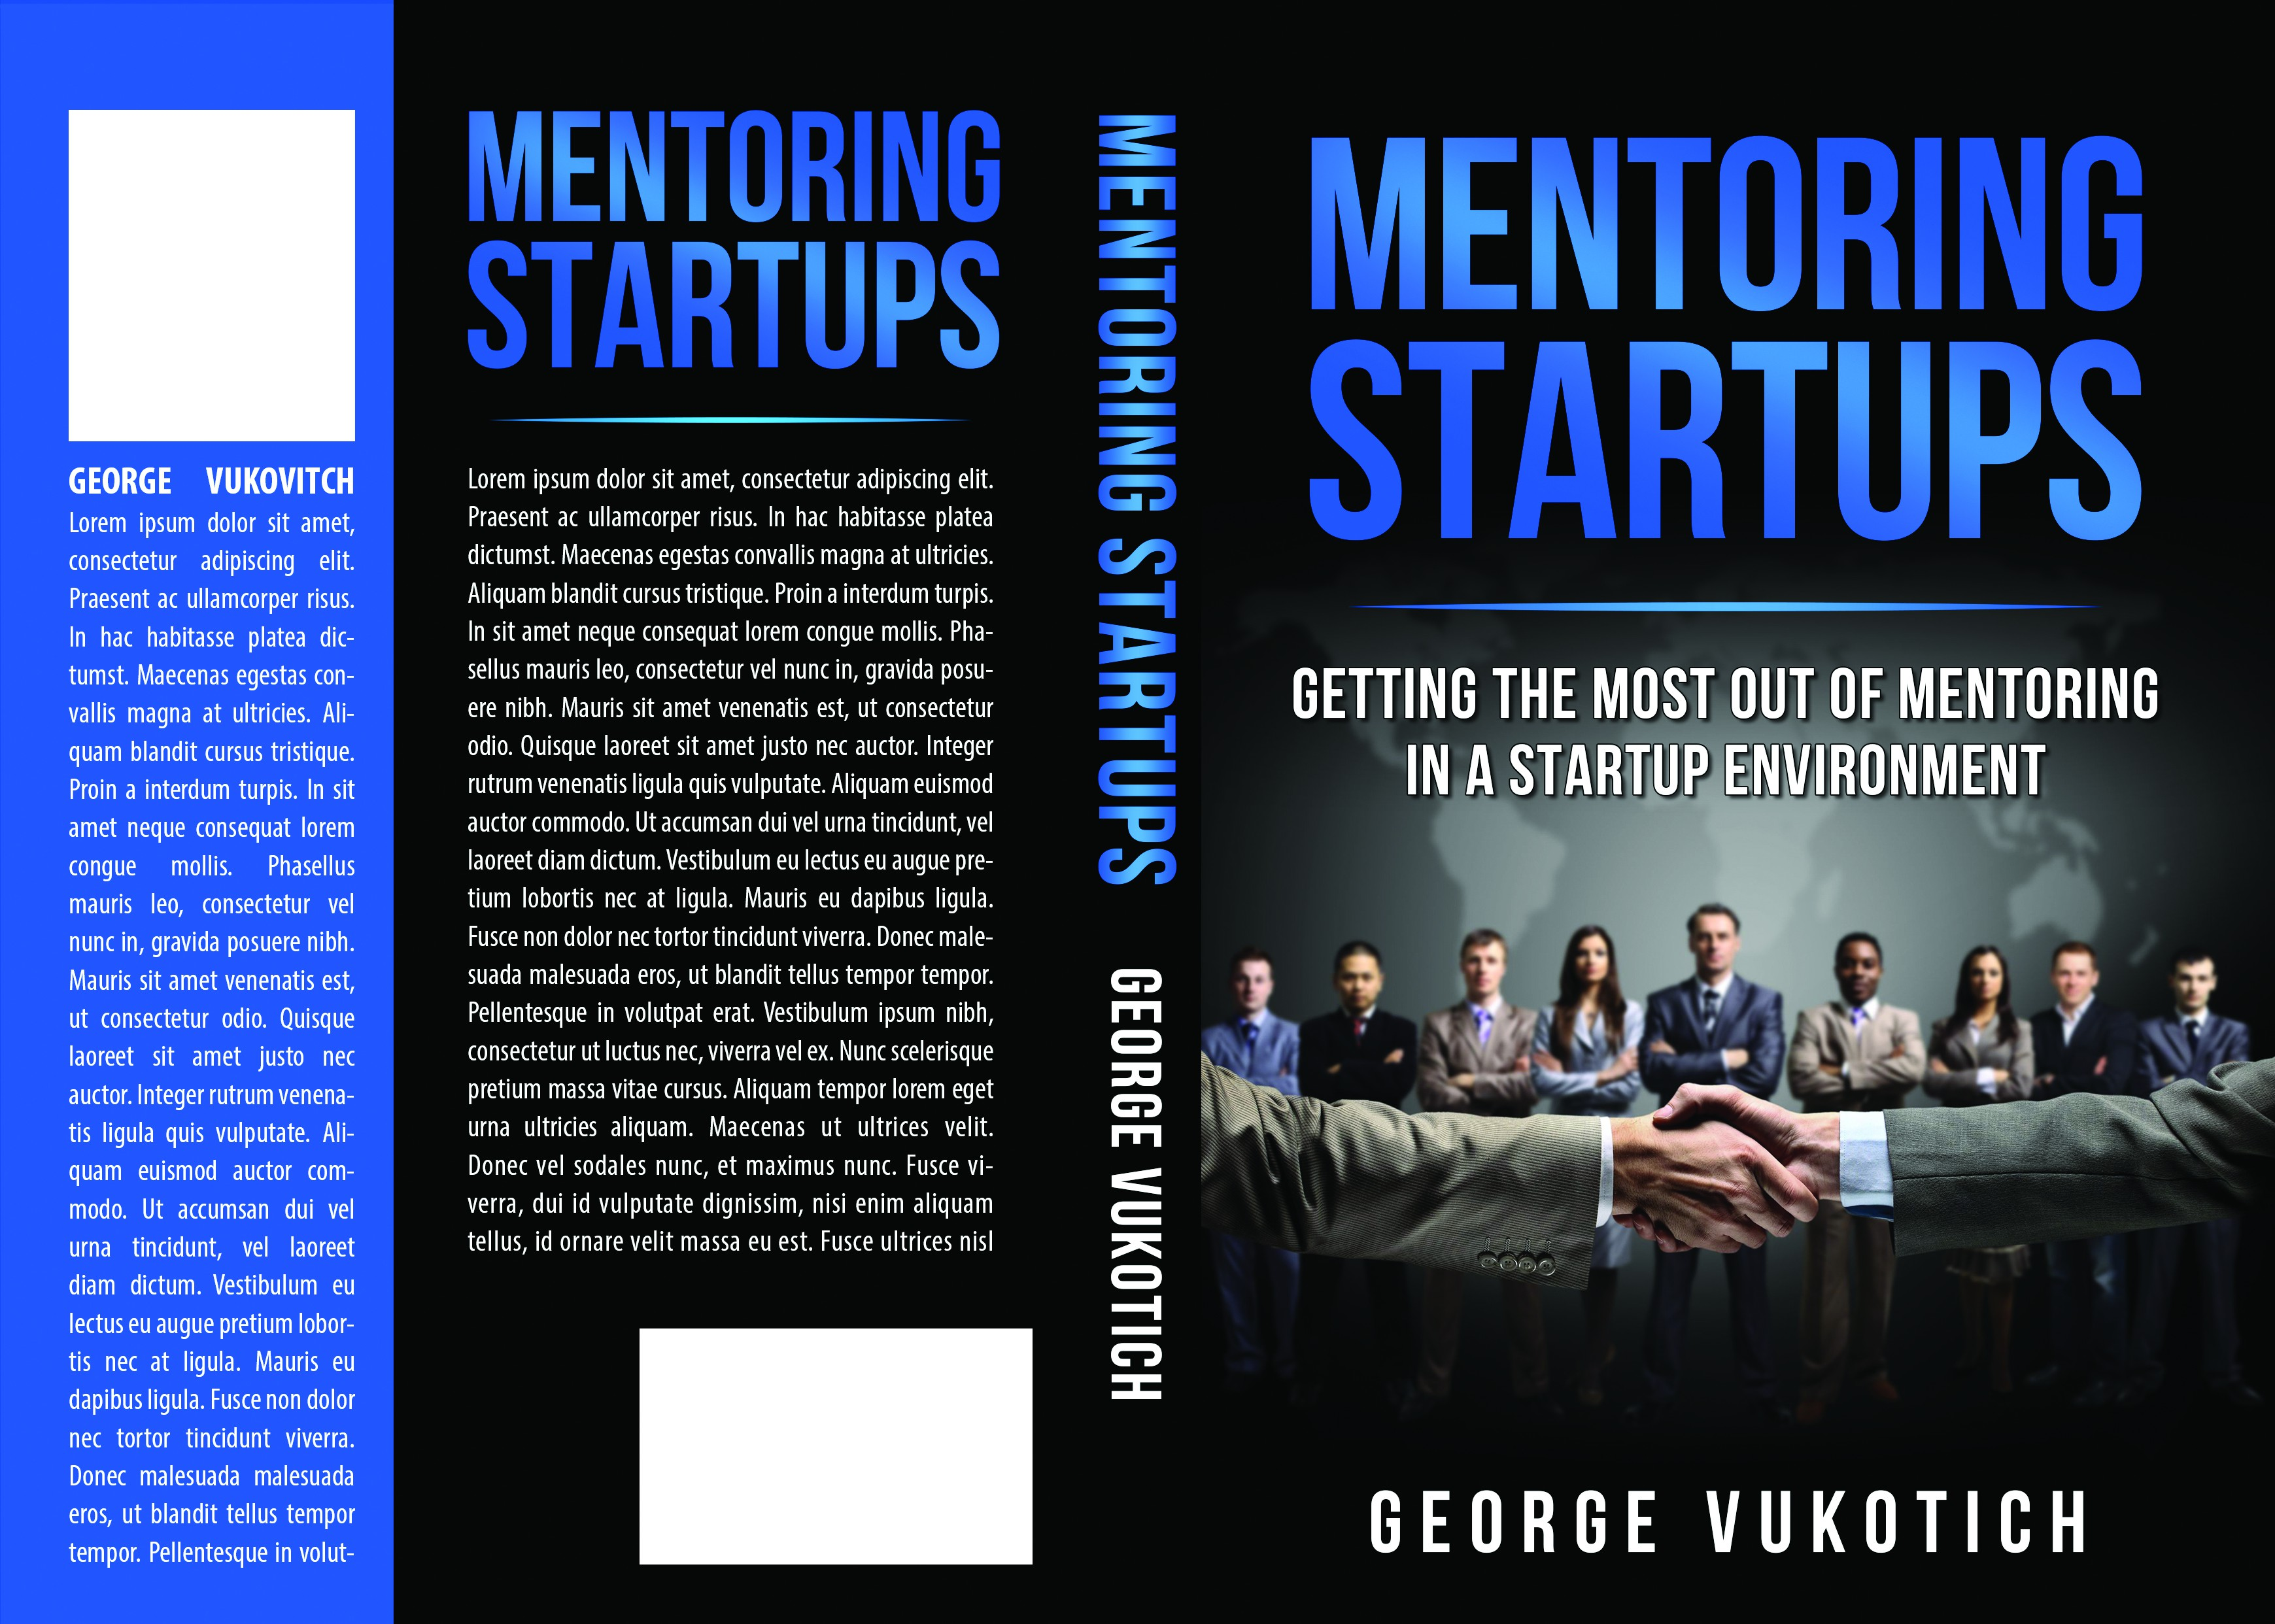 Mentoring Startups: Getting the most out of mentoring in a startup environment